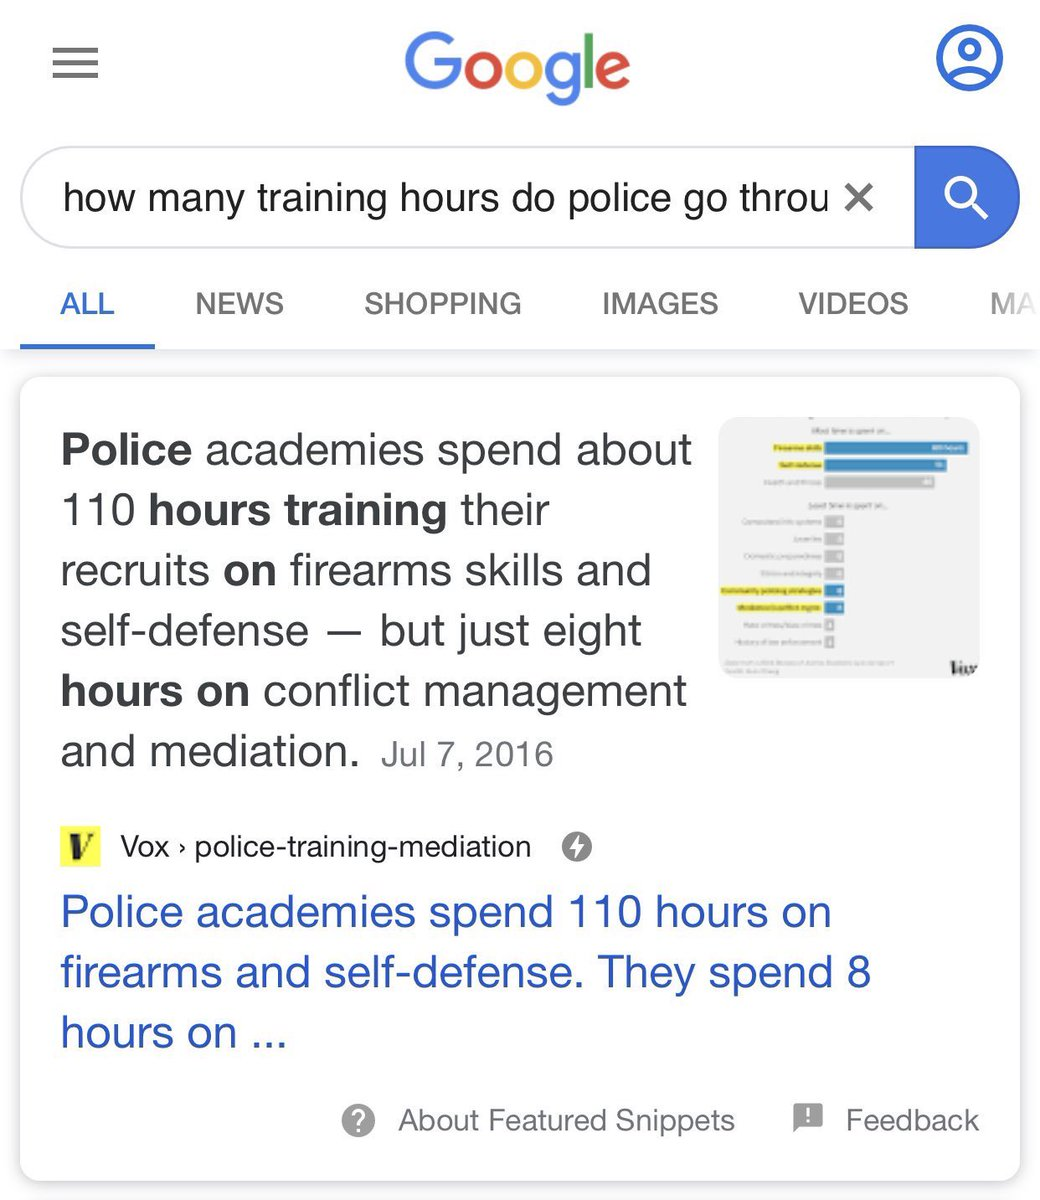 I've spent more hours on GTA online than cops have to spend training